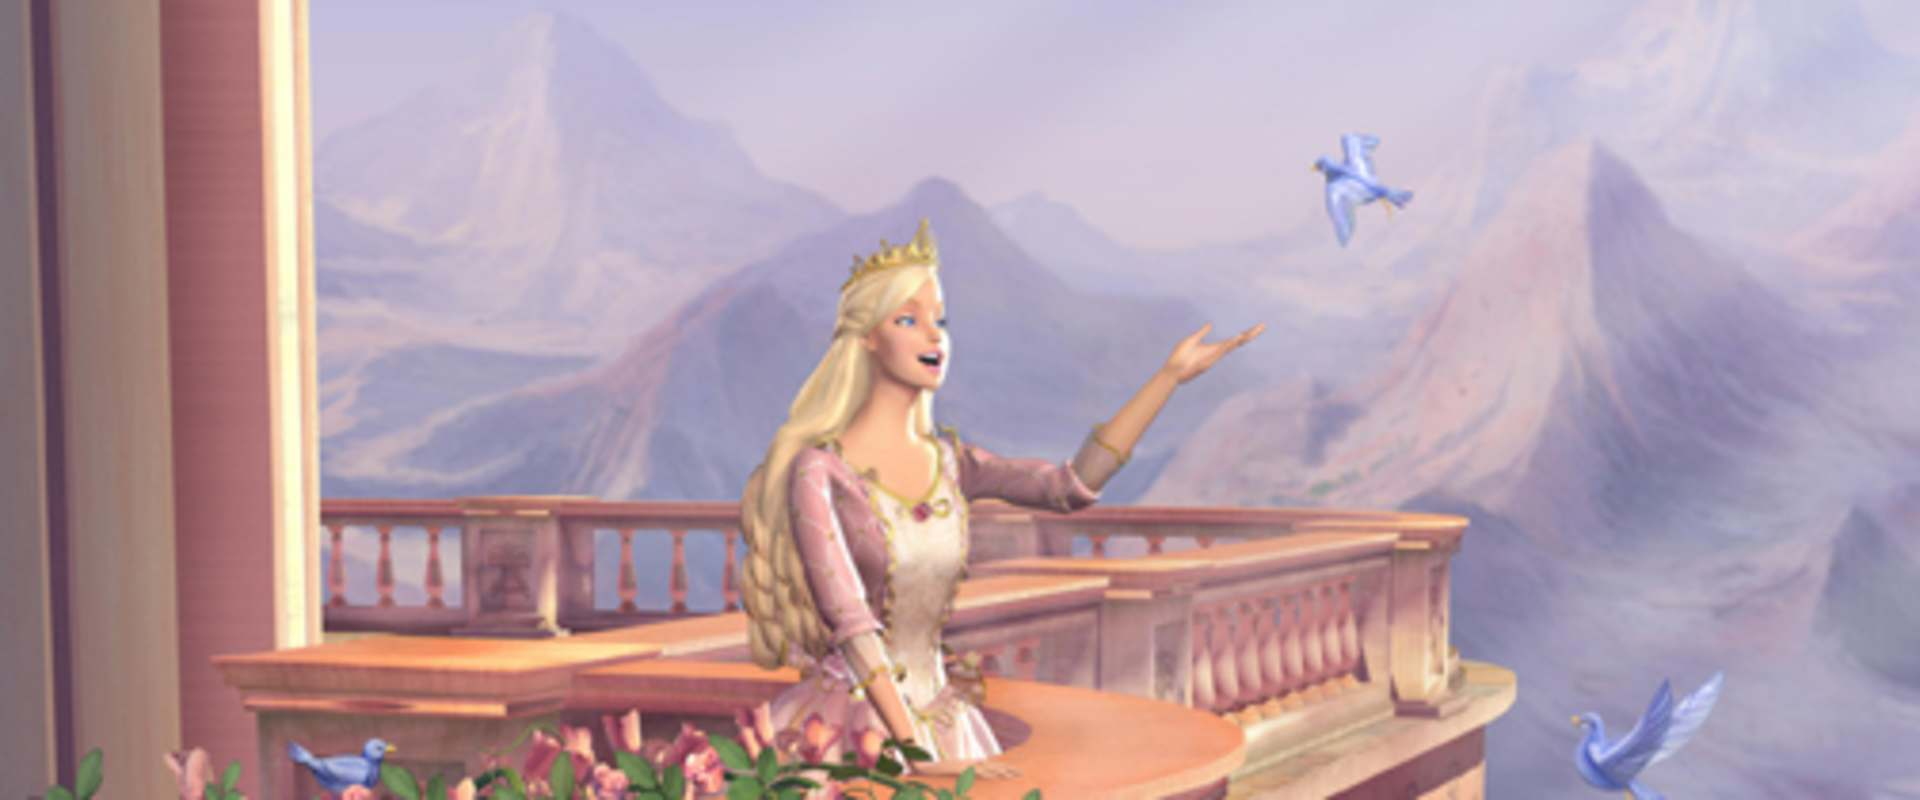 Barbie as the Princess and the Pauper background 1